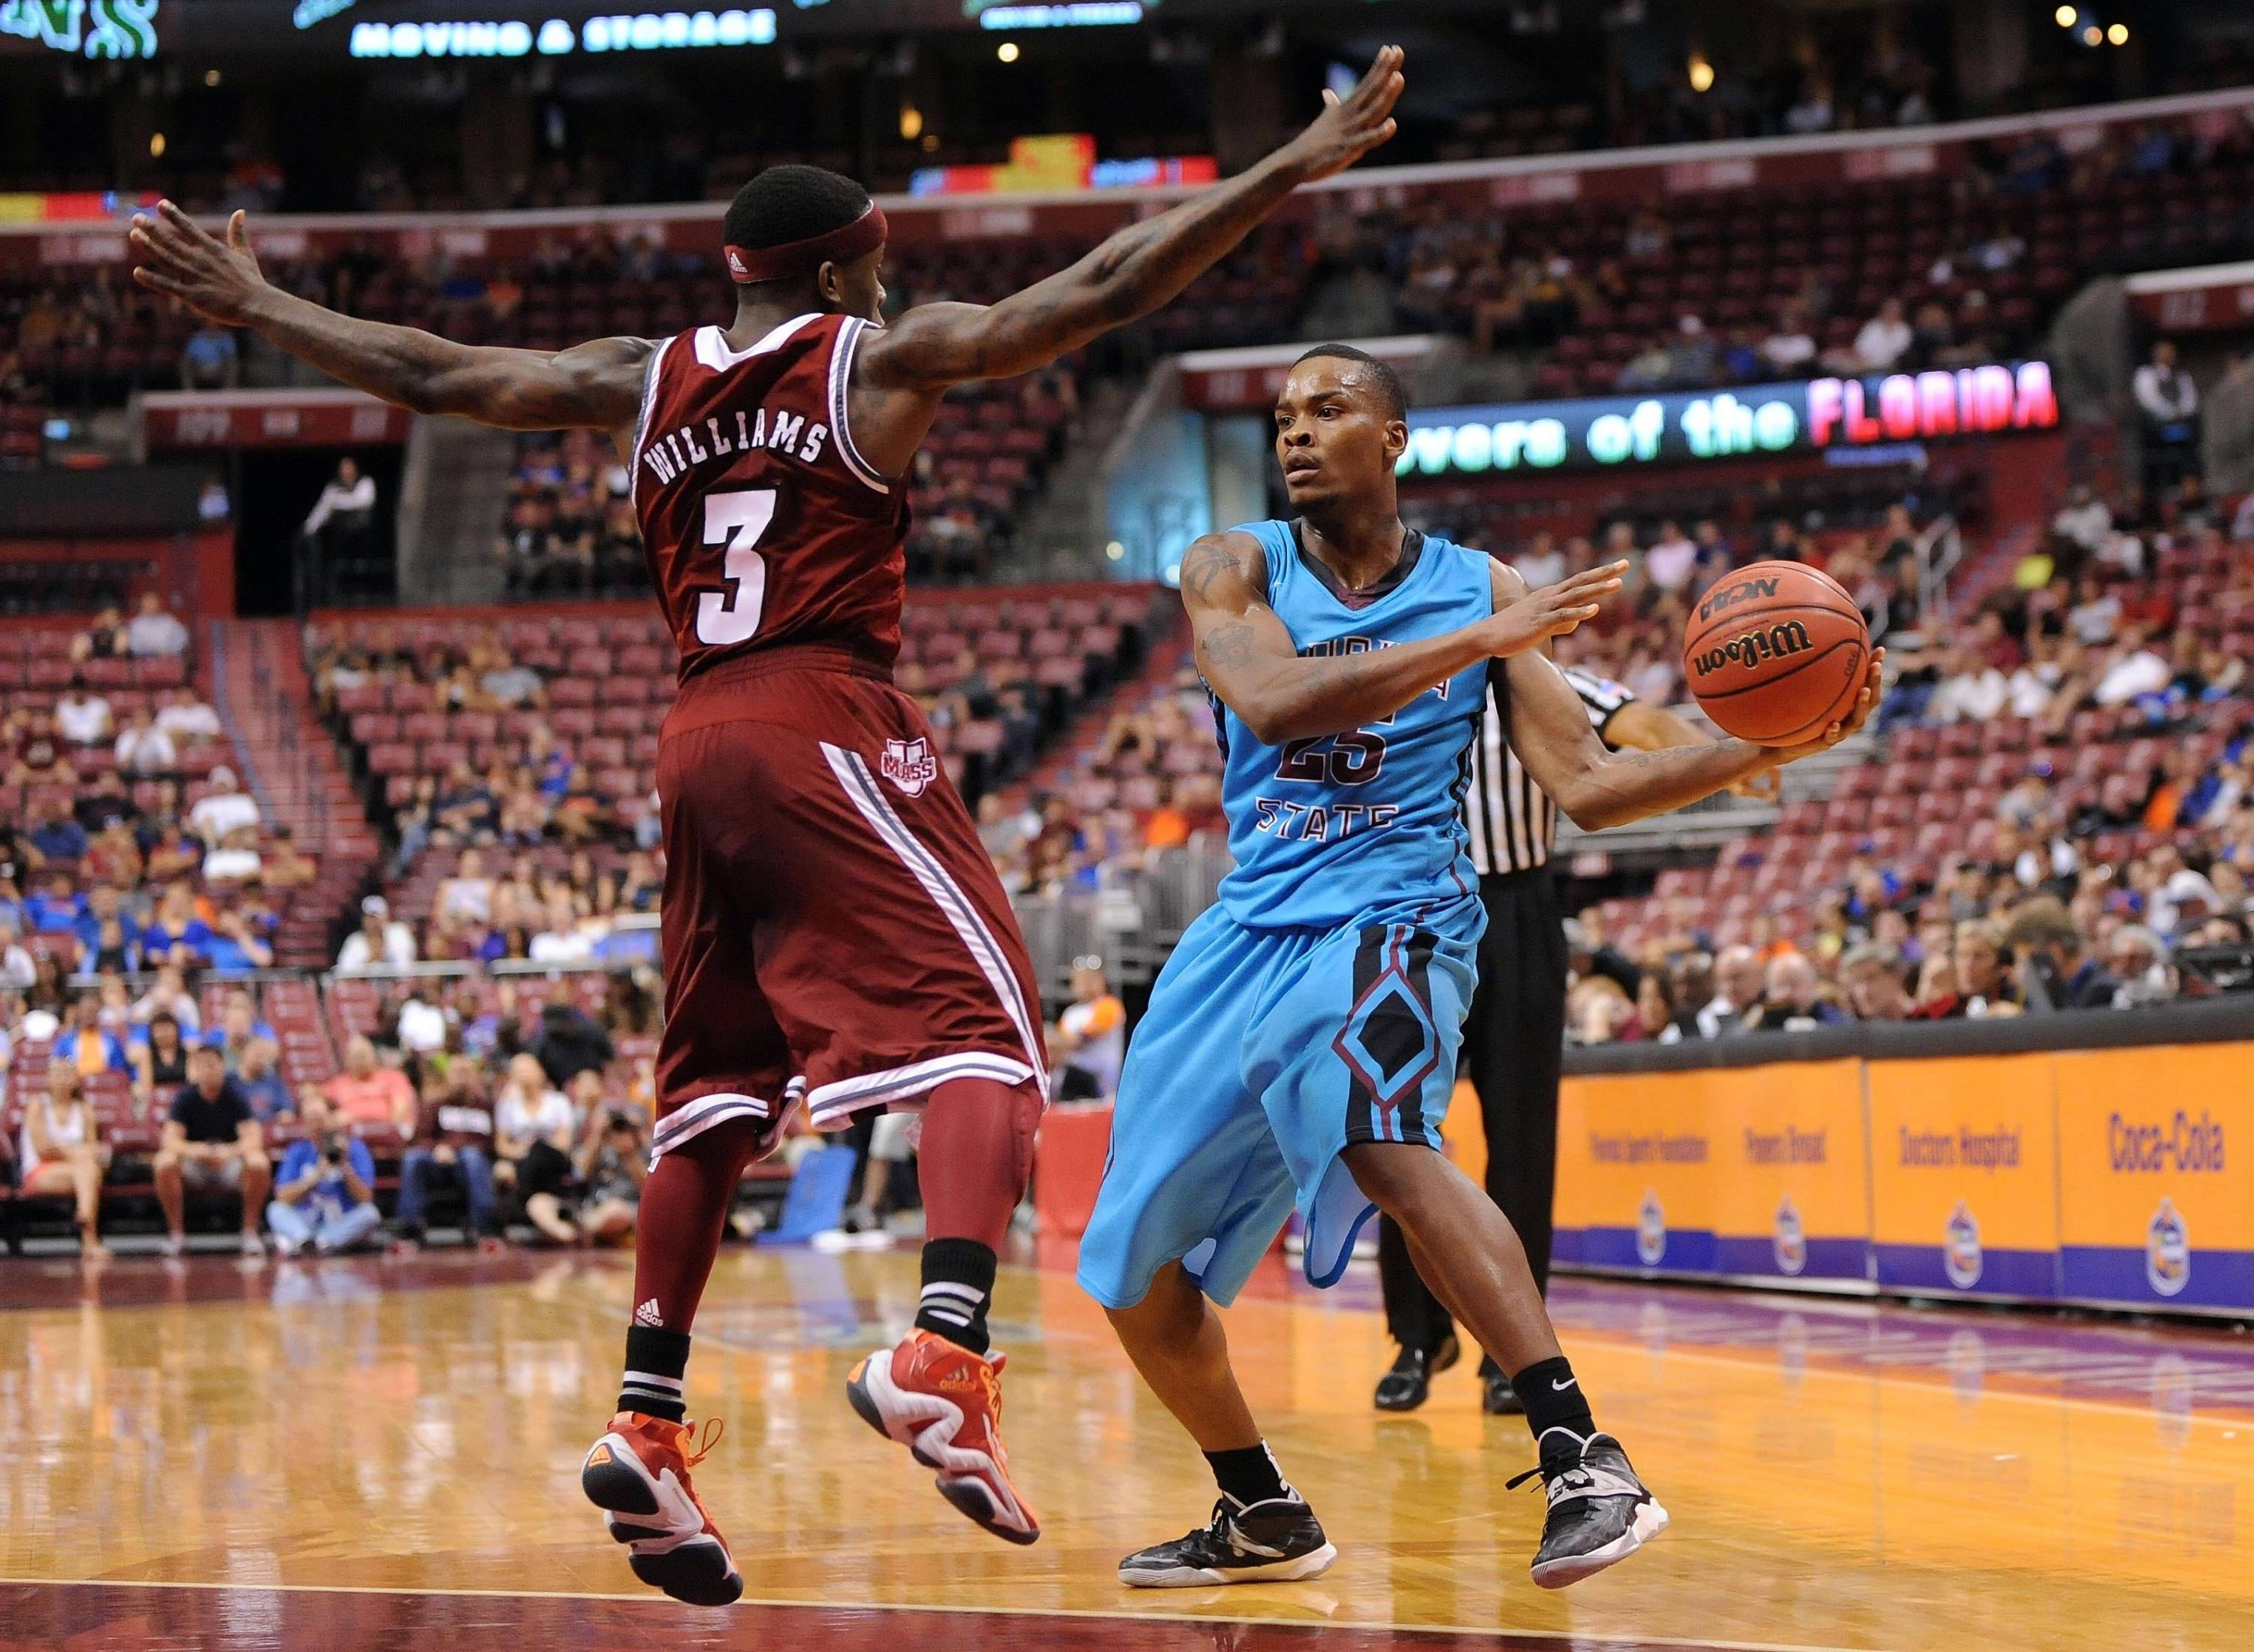 Dec 21, 2013; Sunrise, FL, USA; Florida State Seminoles guard Aaron Thomas (25) passes the ball past Massachusetts Minutemen guard Chaz Williams (3) during the second half at BB&T Center. Mandatory Credit: Steve Mitchell-USA TODAY Sports